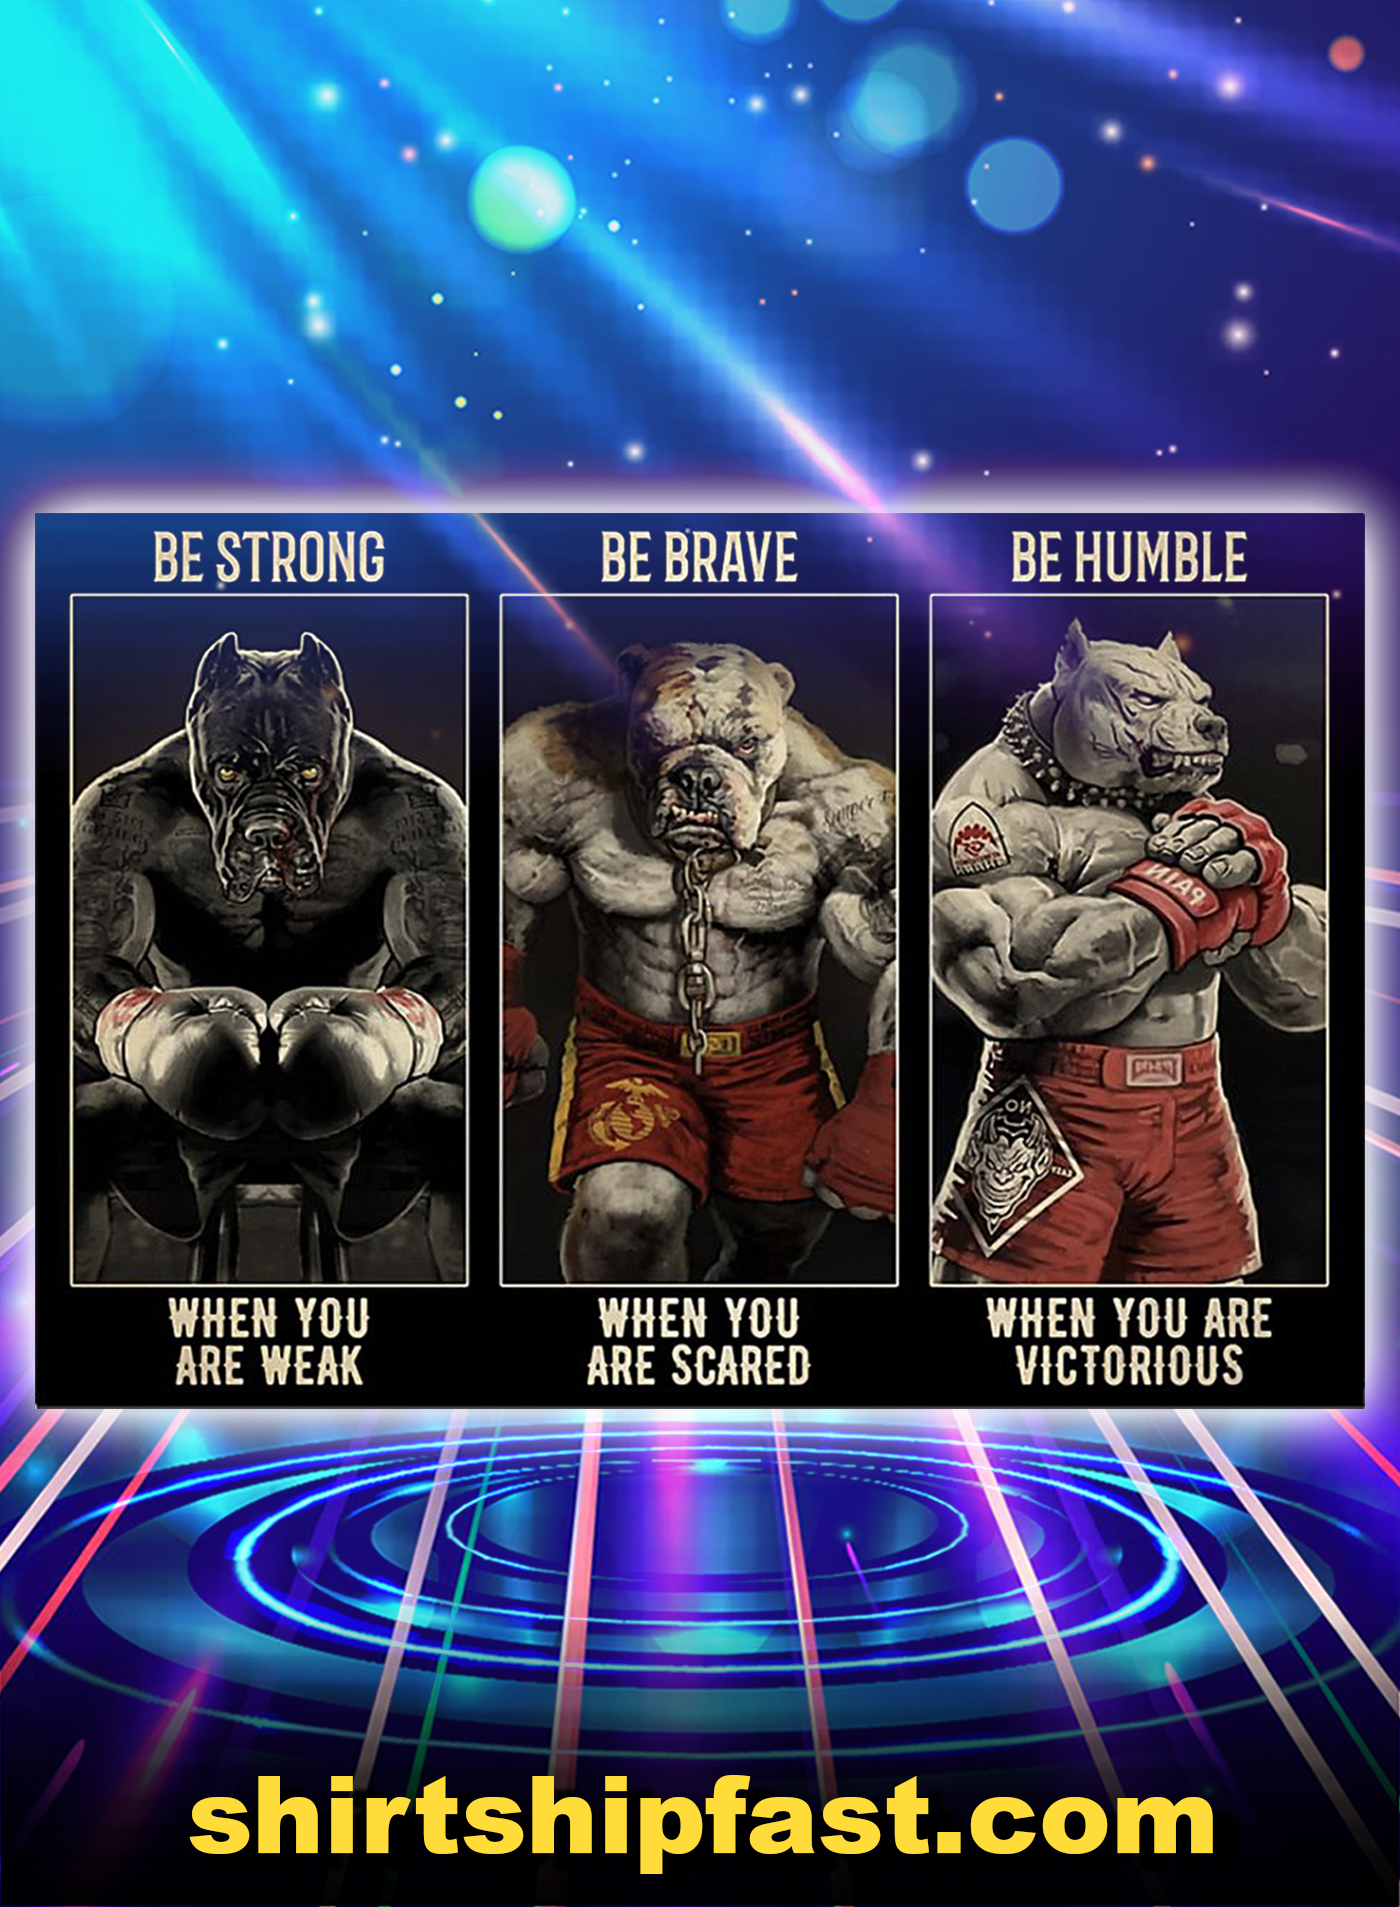 Poster Pitbull boxing be strong be brave be humble - A1